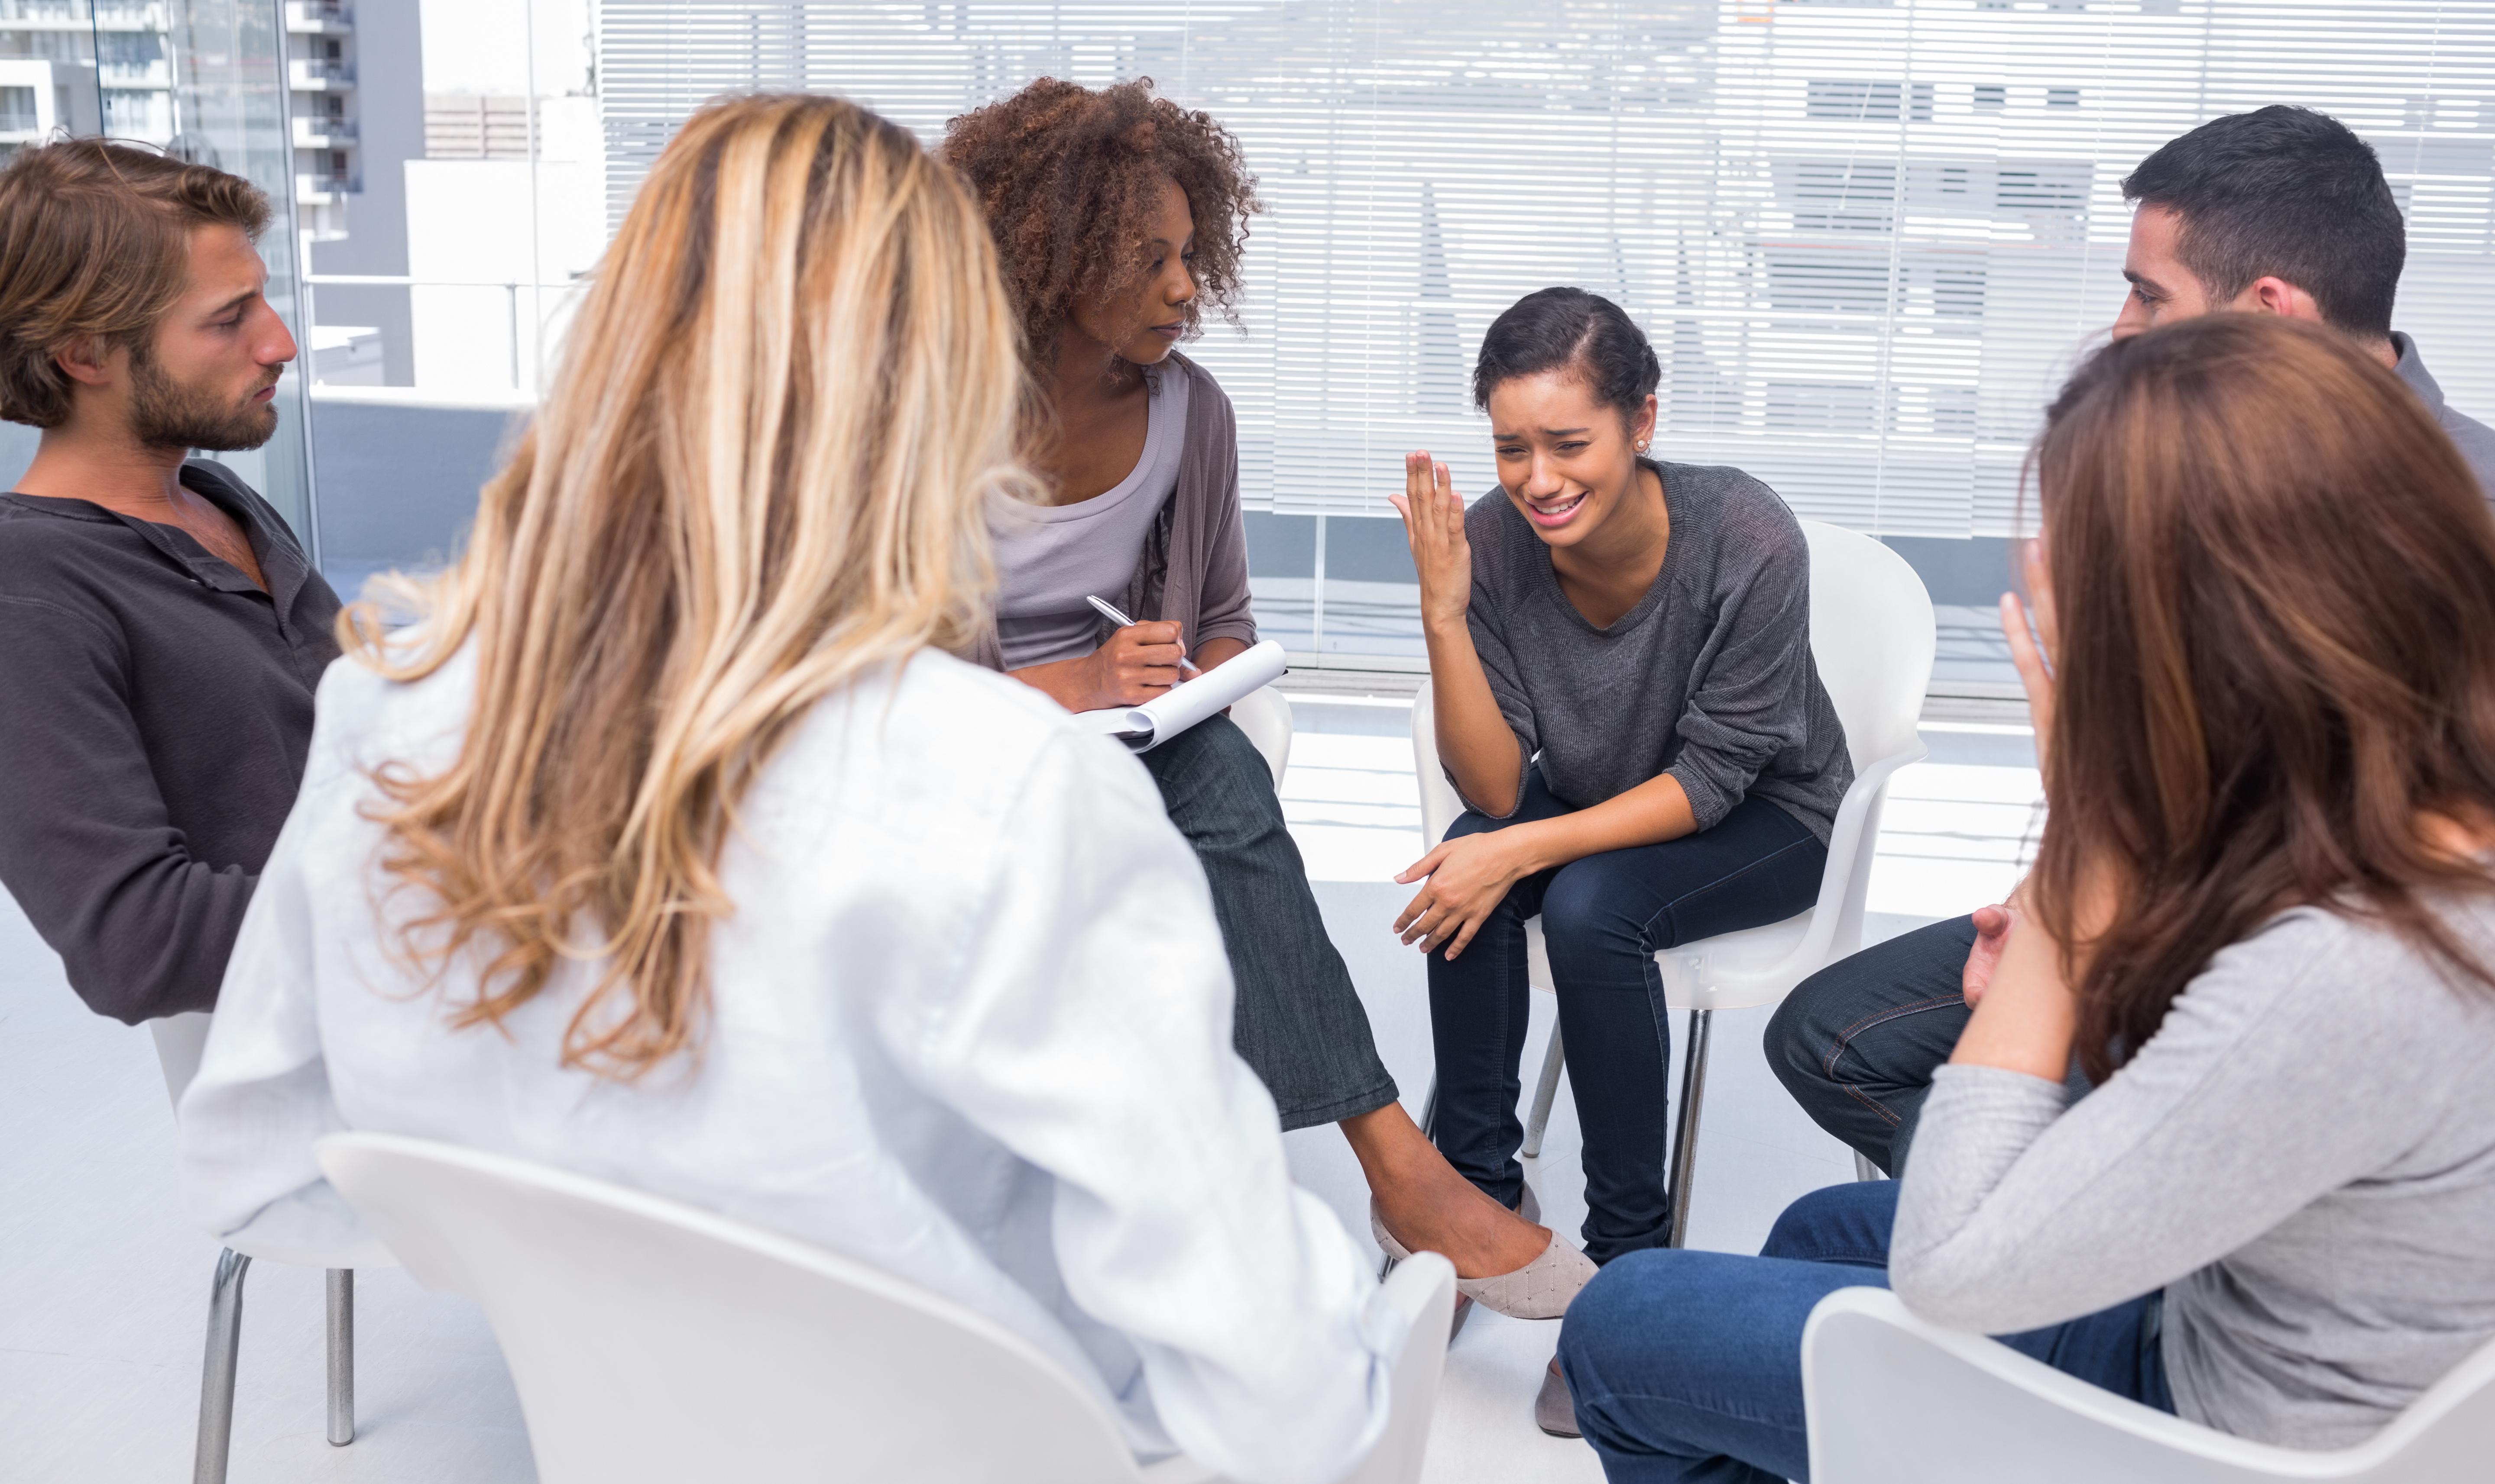 Woman sitting on chair and getting depressed in group therapy